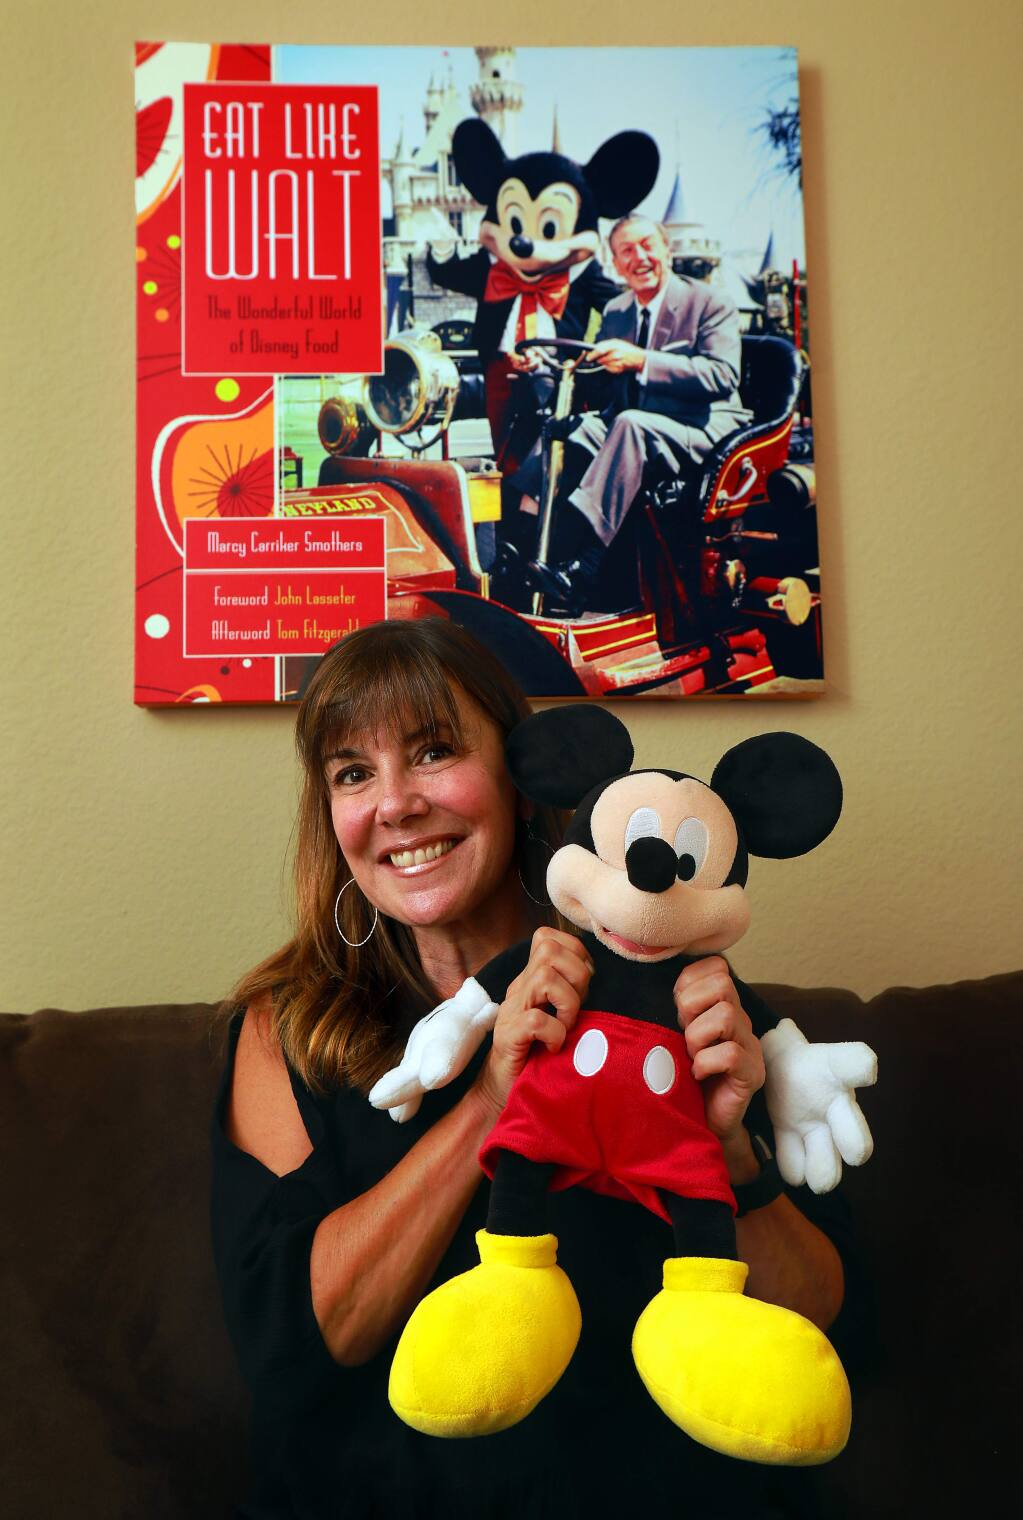 Author Marcy Smothers wrote about the culinary history of Disneyland in her book, 'Eat Like Walt.' (photo by John Burgess/The Press Democrat)